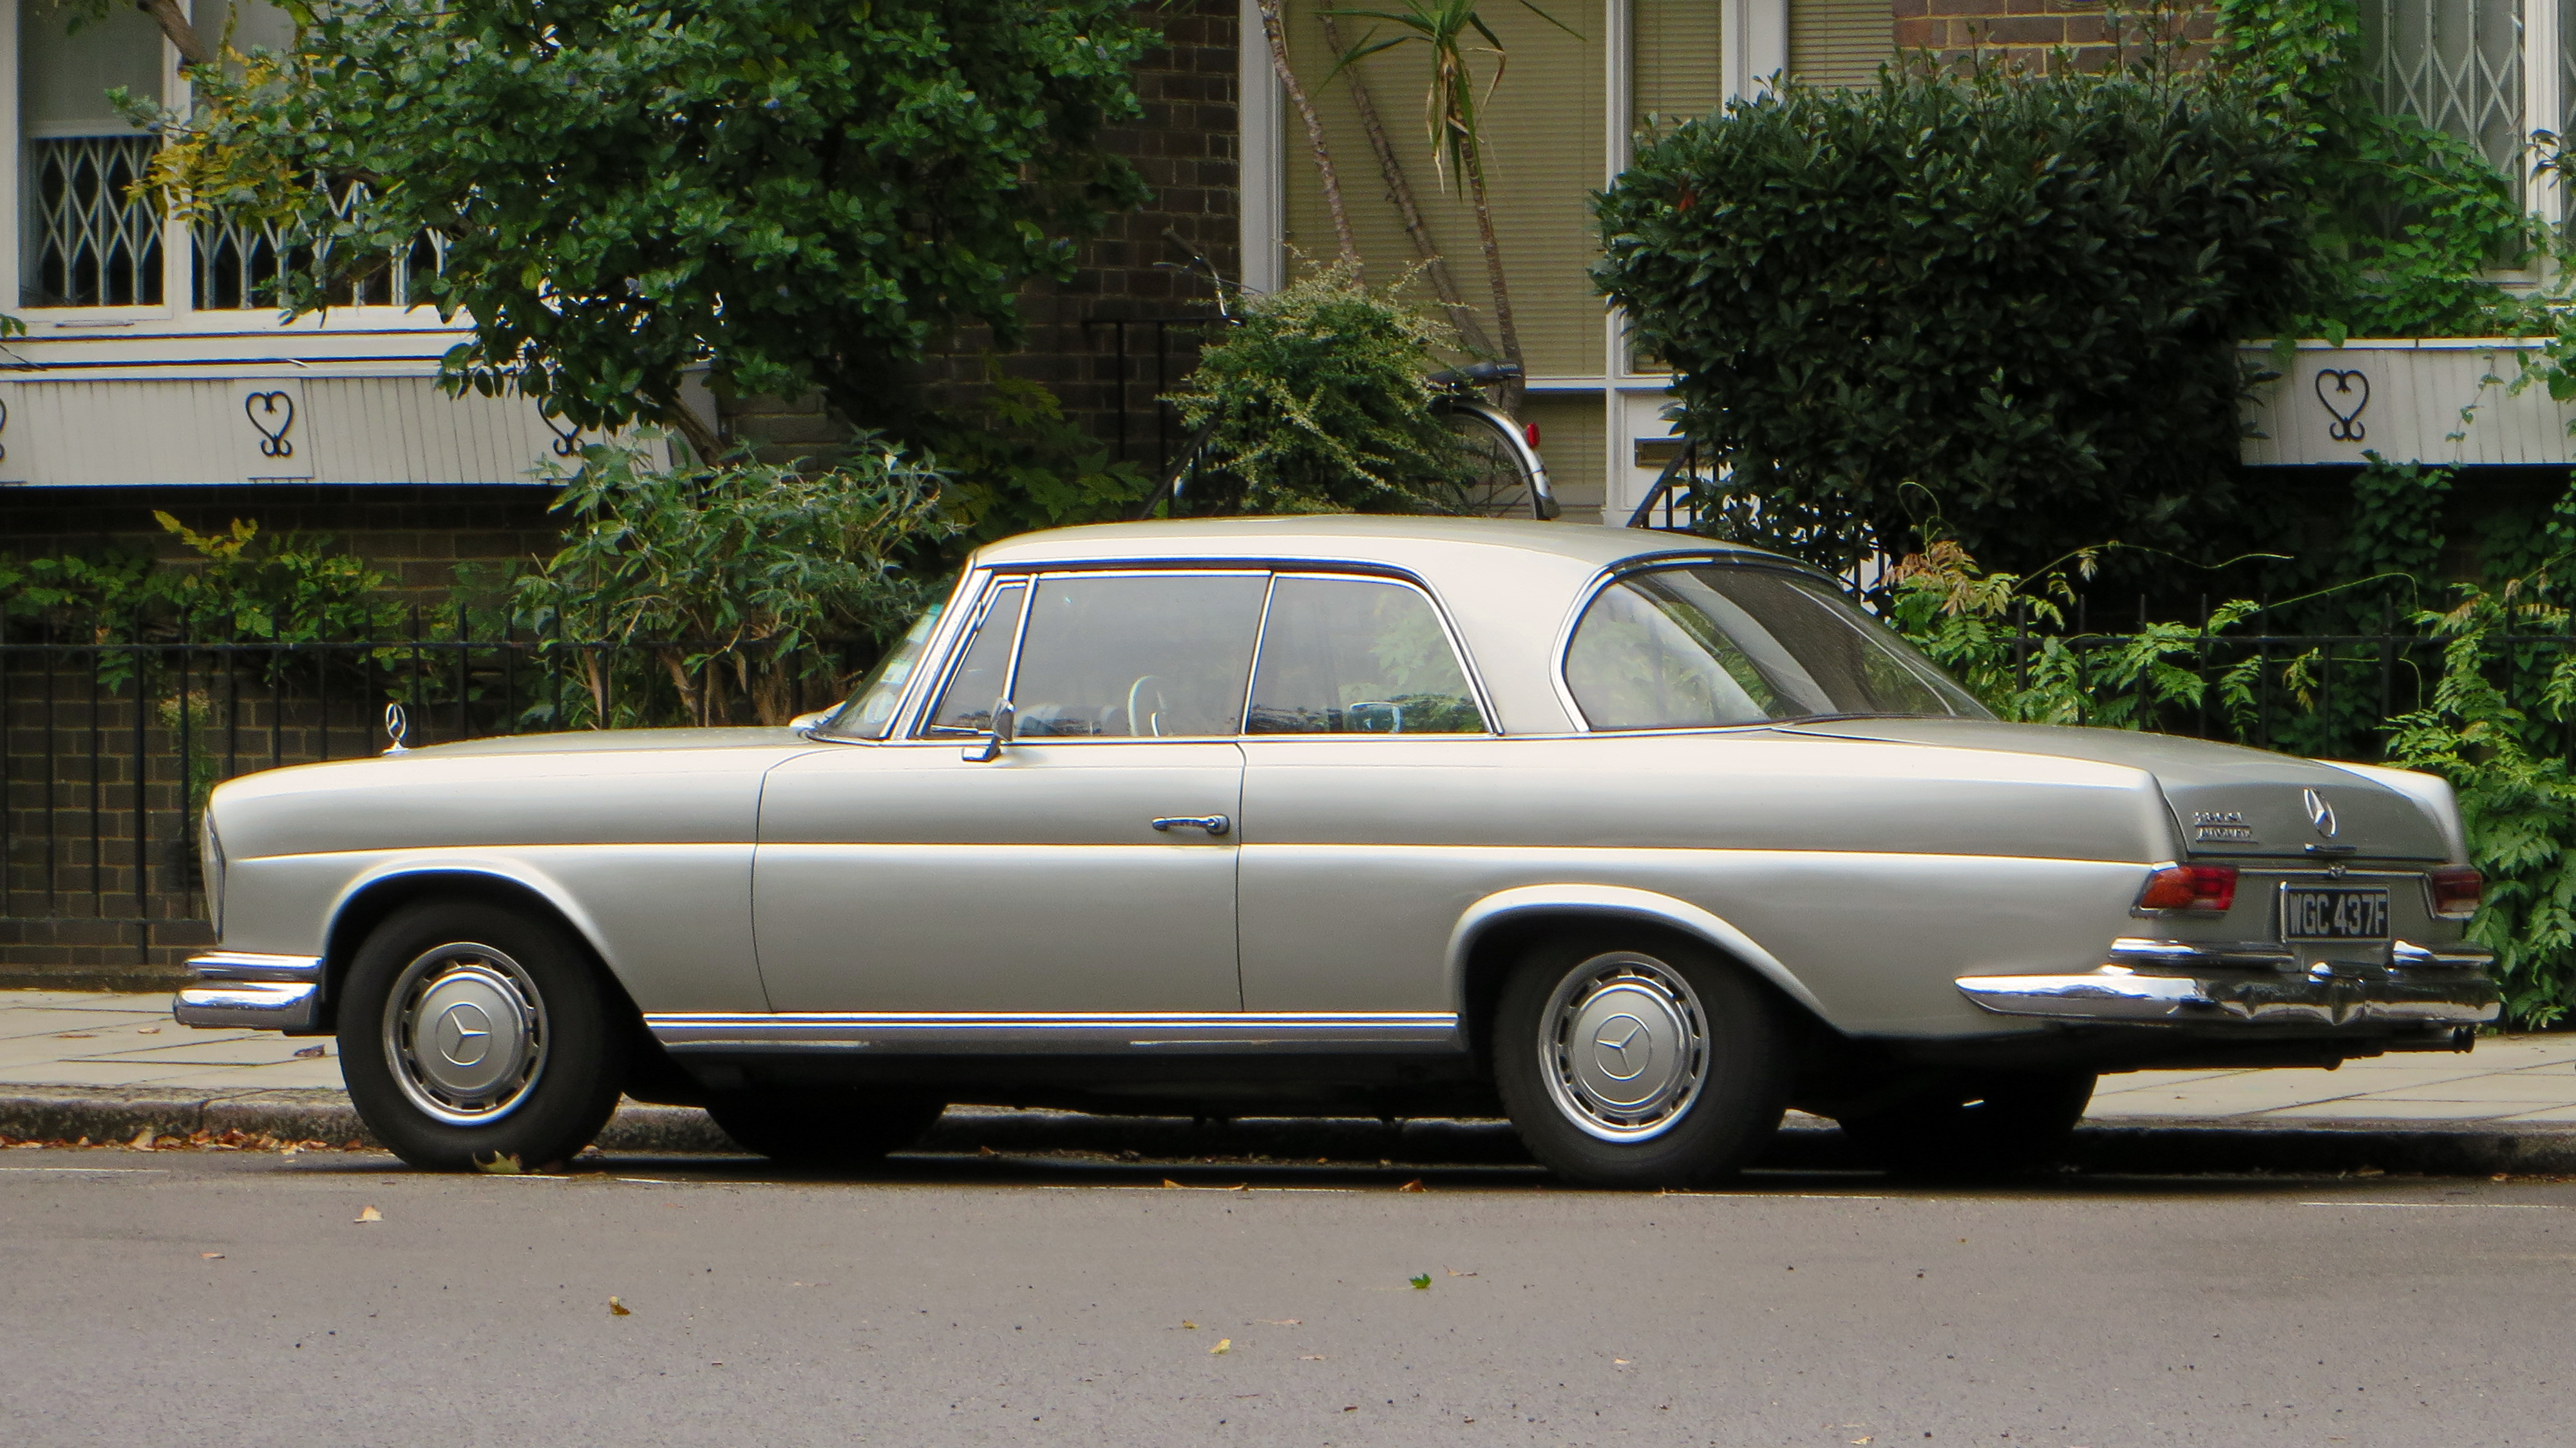 city of westminster london uk 1969 mercedes benz 280 se. Cars Review. Best American Auto & Cars Review